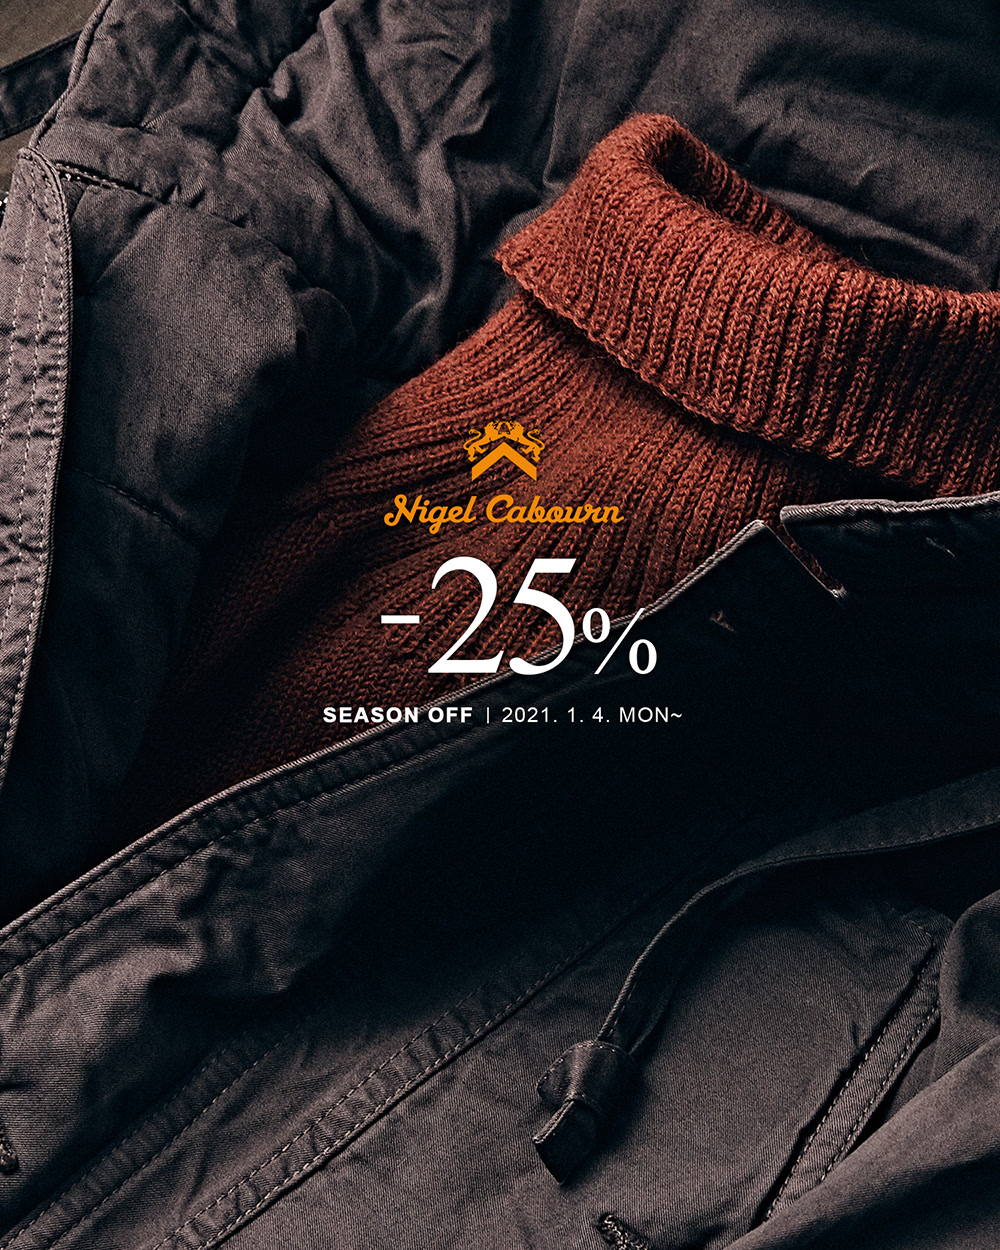 [NIGEL CABOURN] SEASON OFF -25%